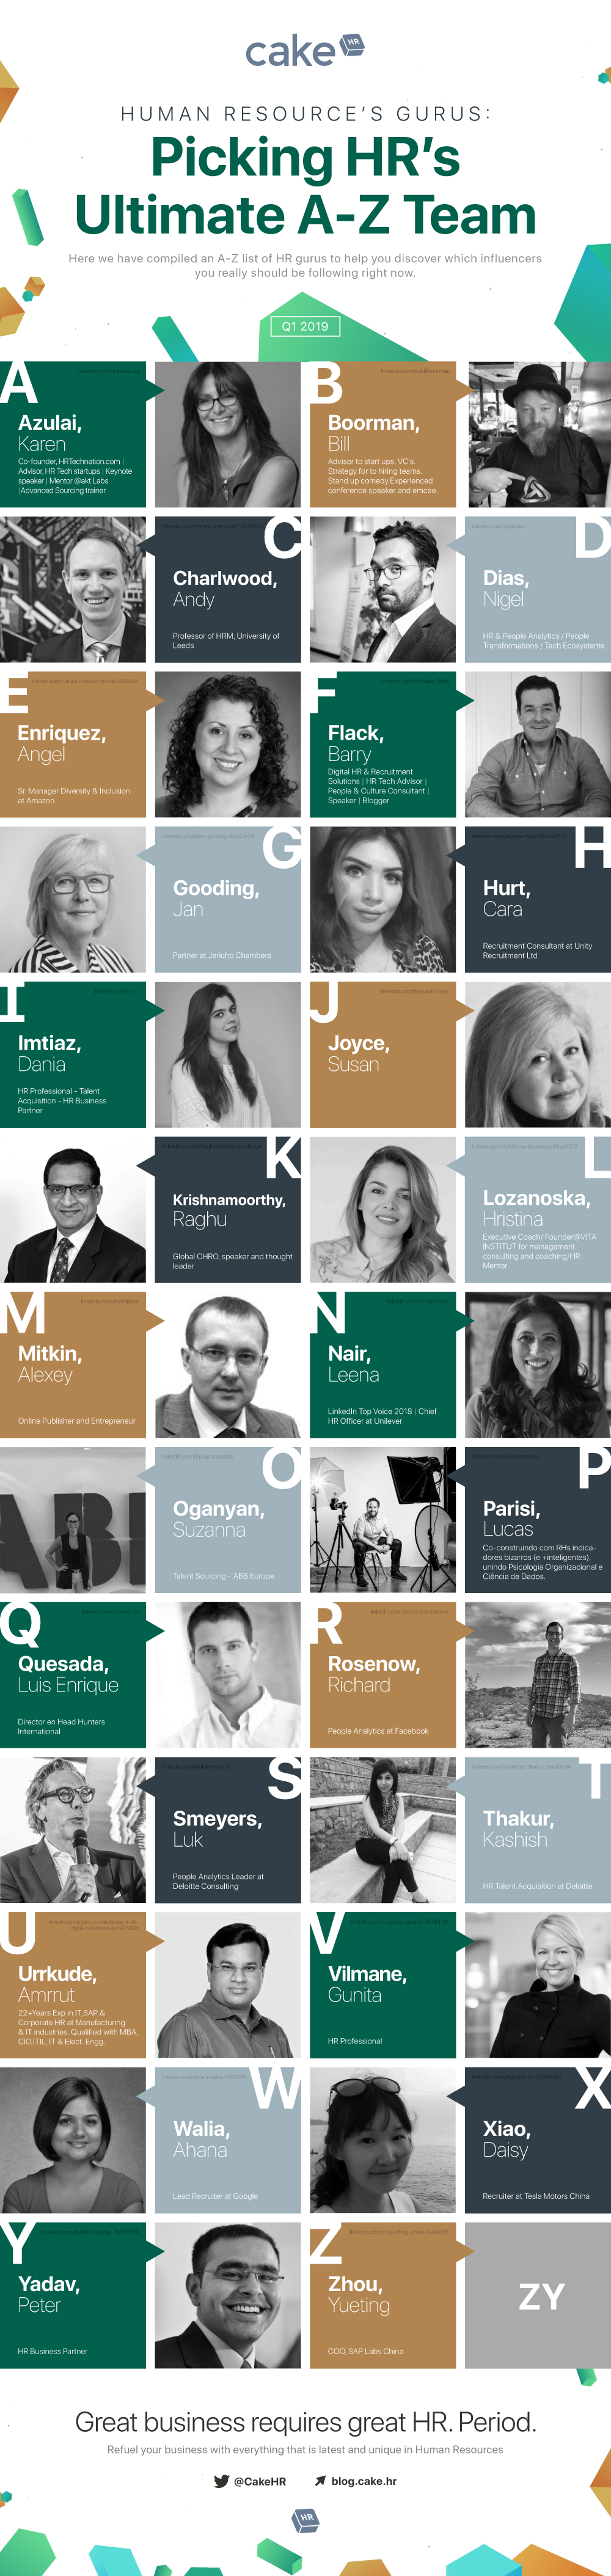 HR Gurus for Q1 2019: The A-Z of Human Resources Experts This Quarter [Infographic] cakehr